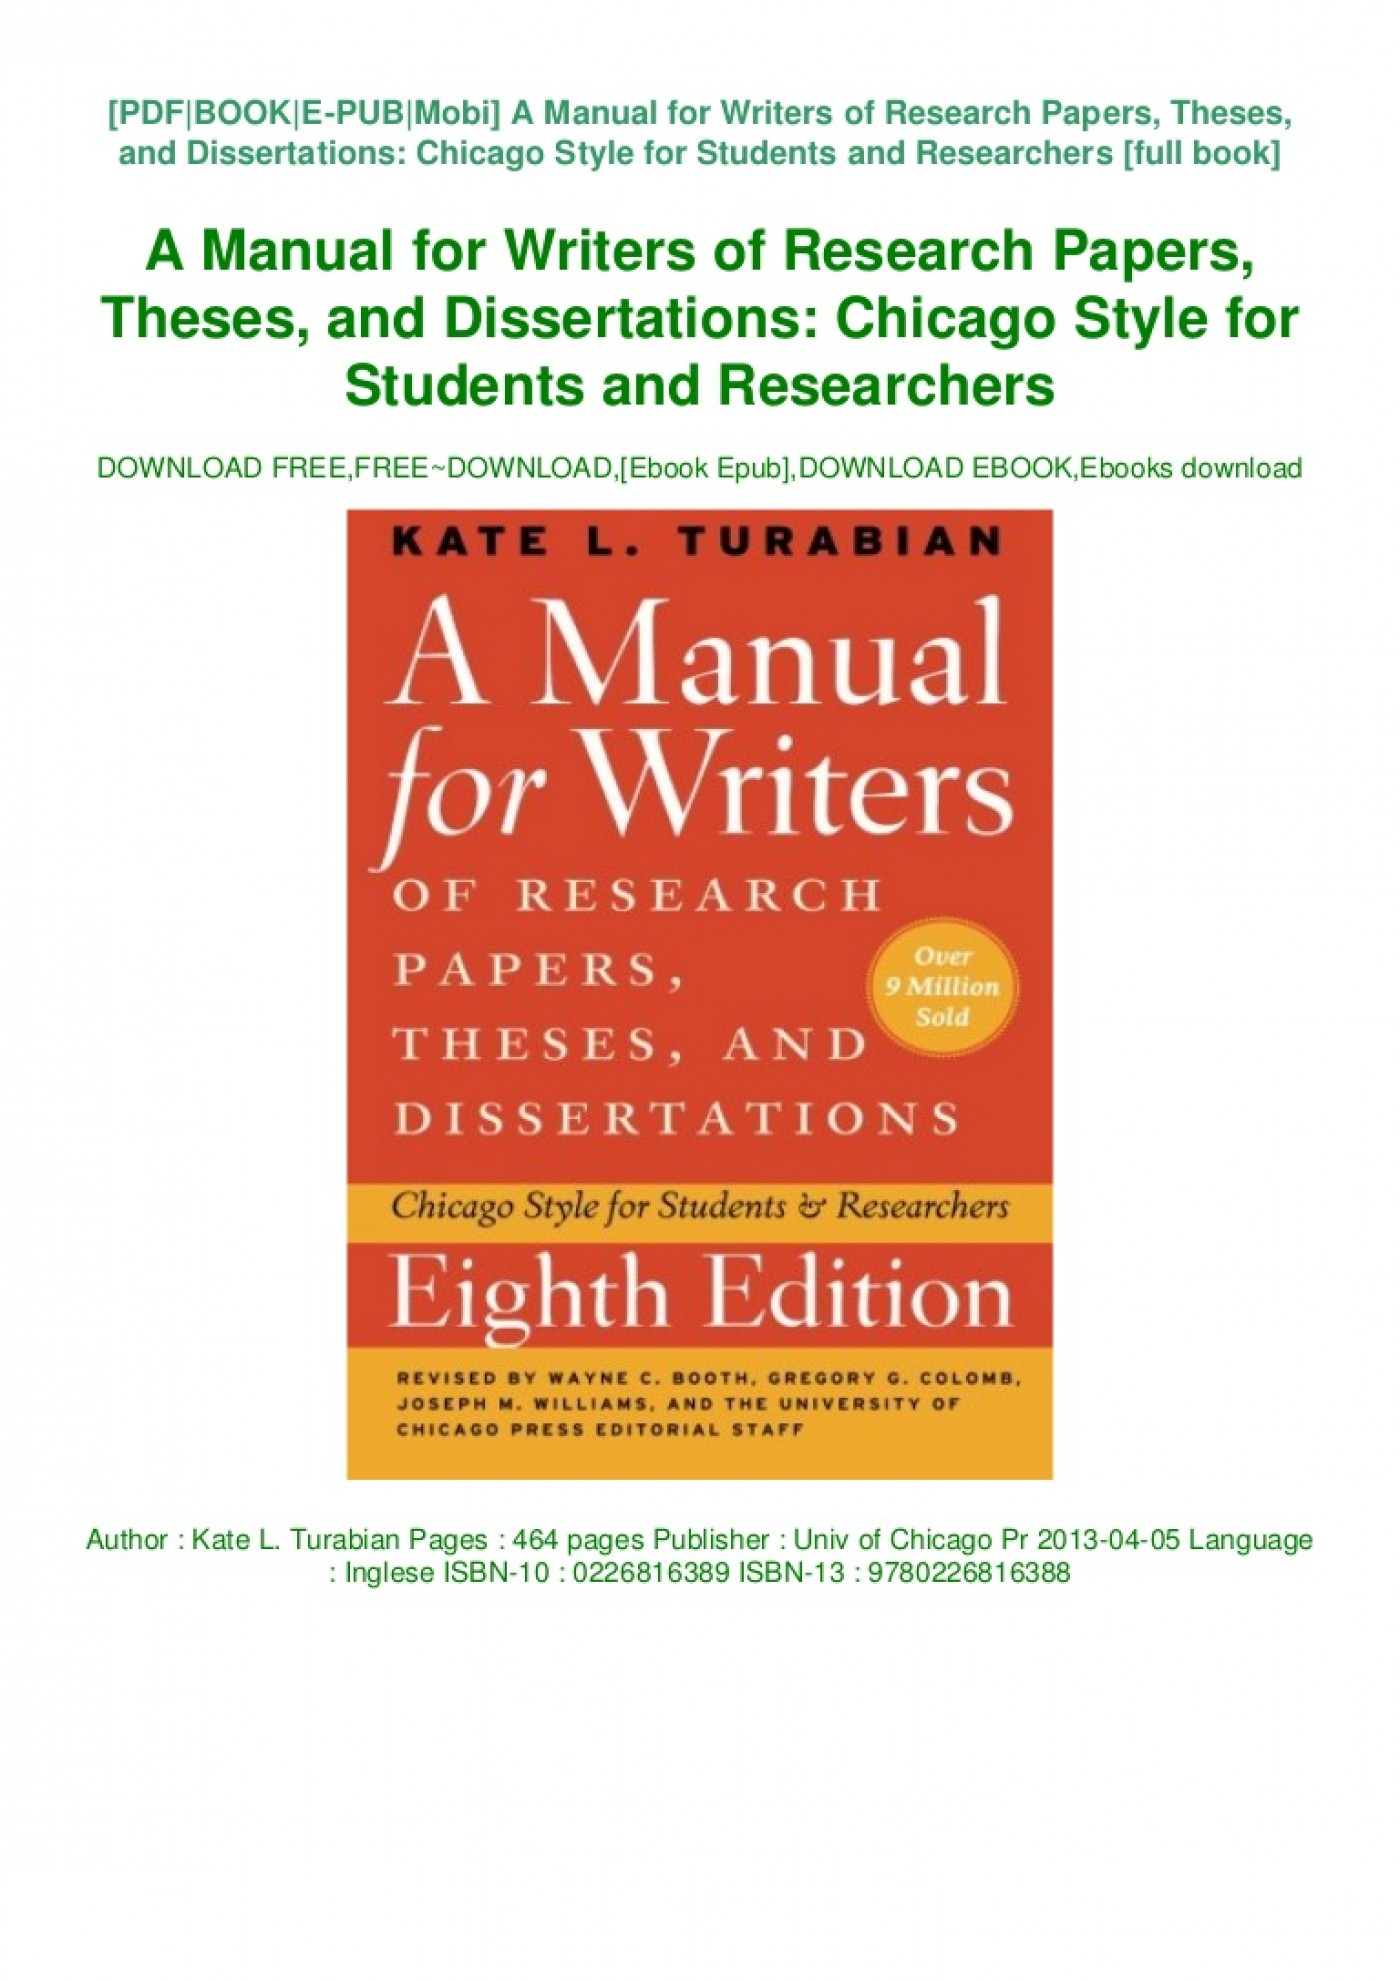 005 Manual For Writers Of Researchs Theses And Dissertations Book Thumbnail Magnificent Research Papers A Amazon 9th Edition Pdf 8th 13 1400